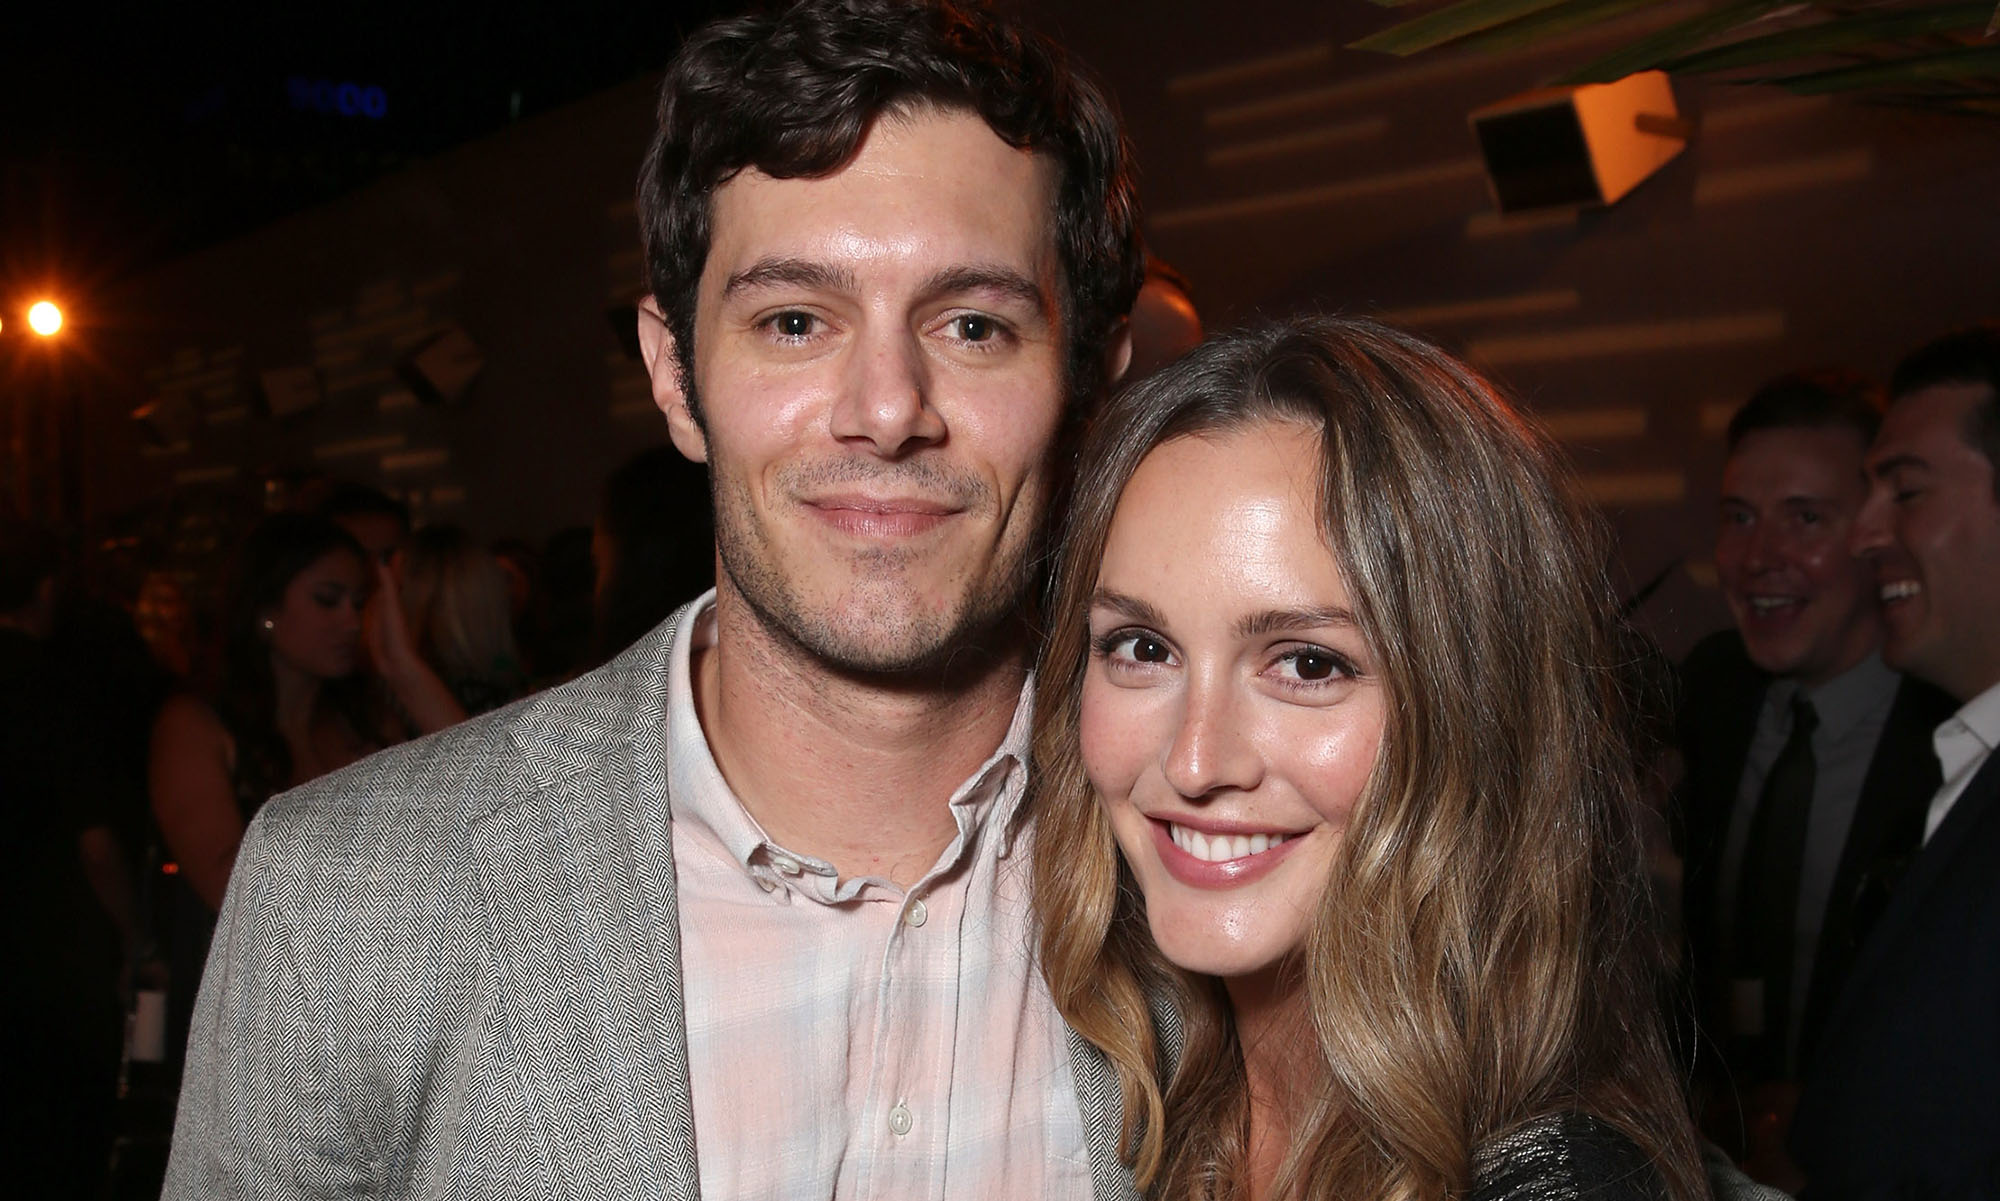 Adam Brody and Leighton Meester Refuse to Let Drama Poison Their Love